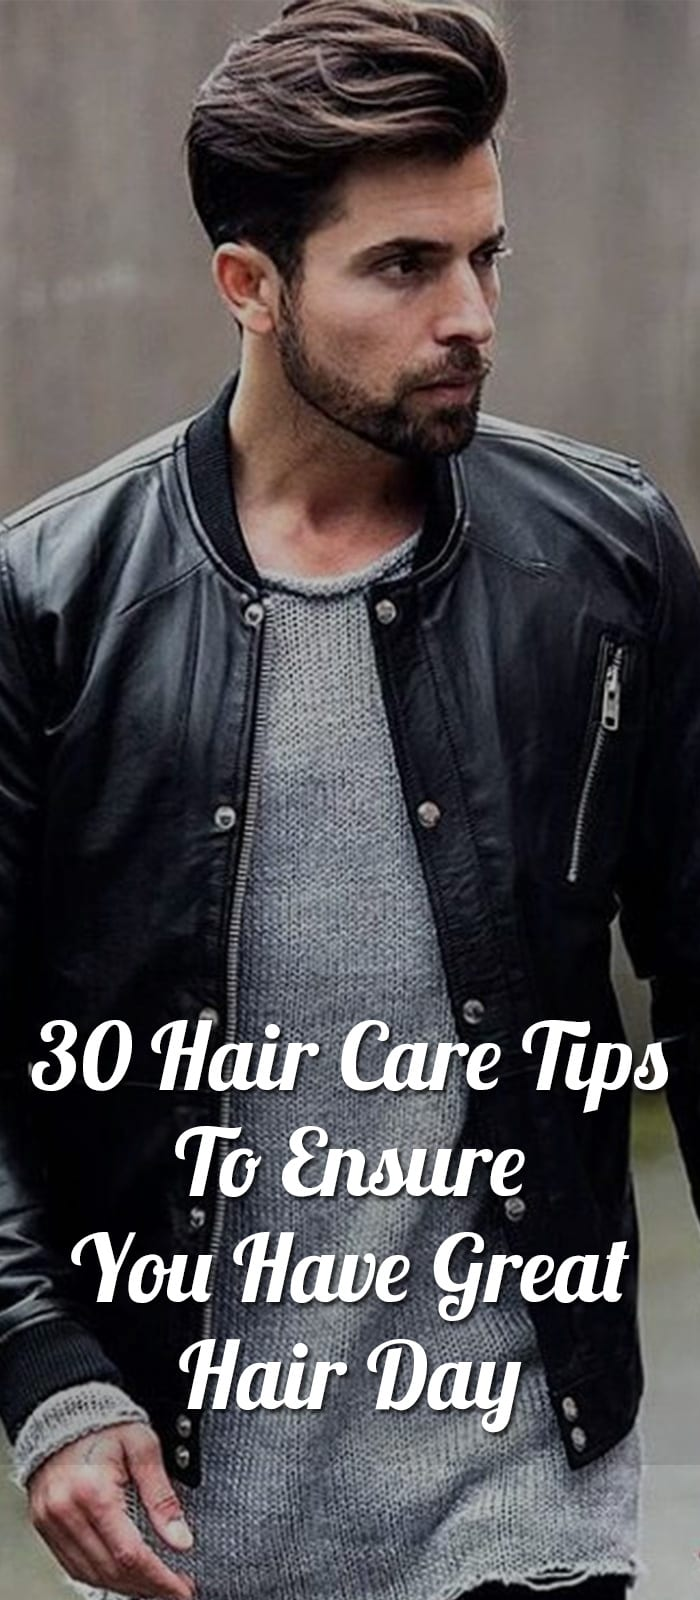 30-Hair-Care-Tips-To-Ensure-You-Have-Great-Hair-Day